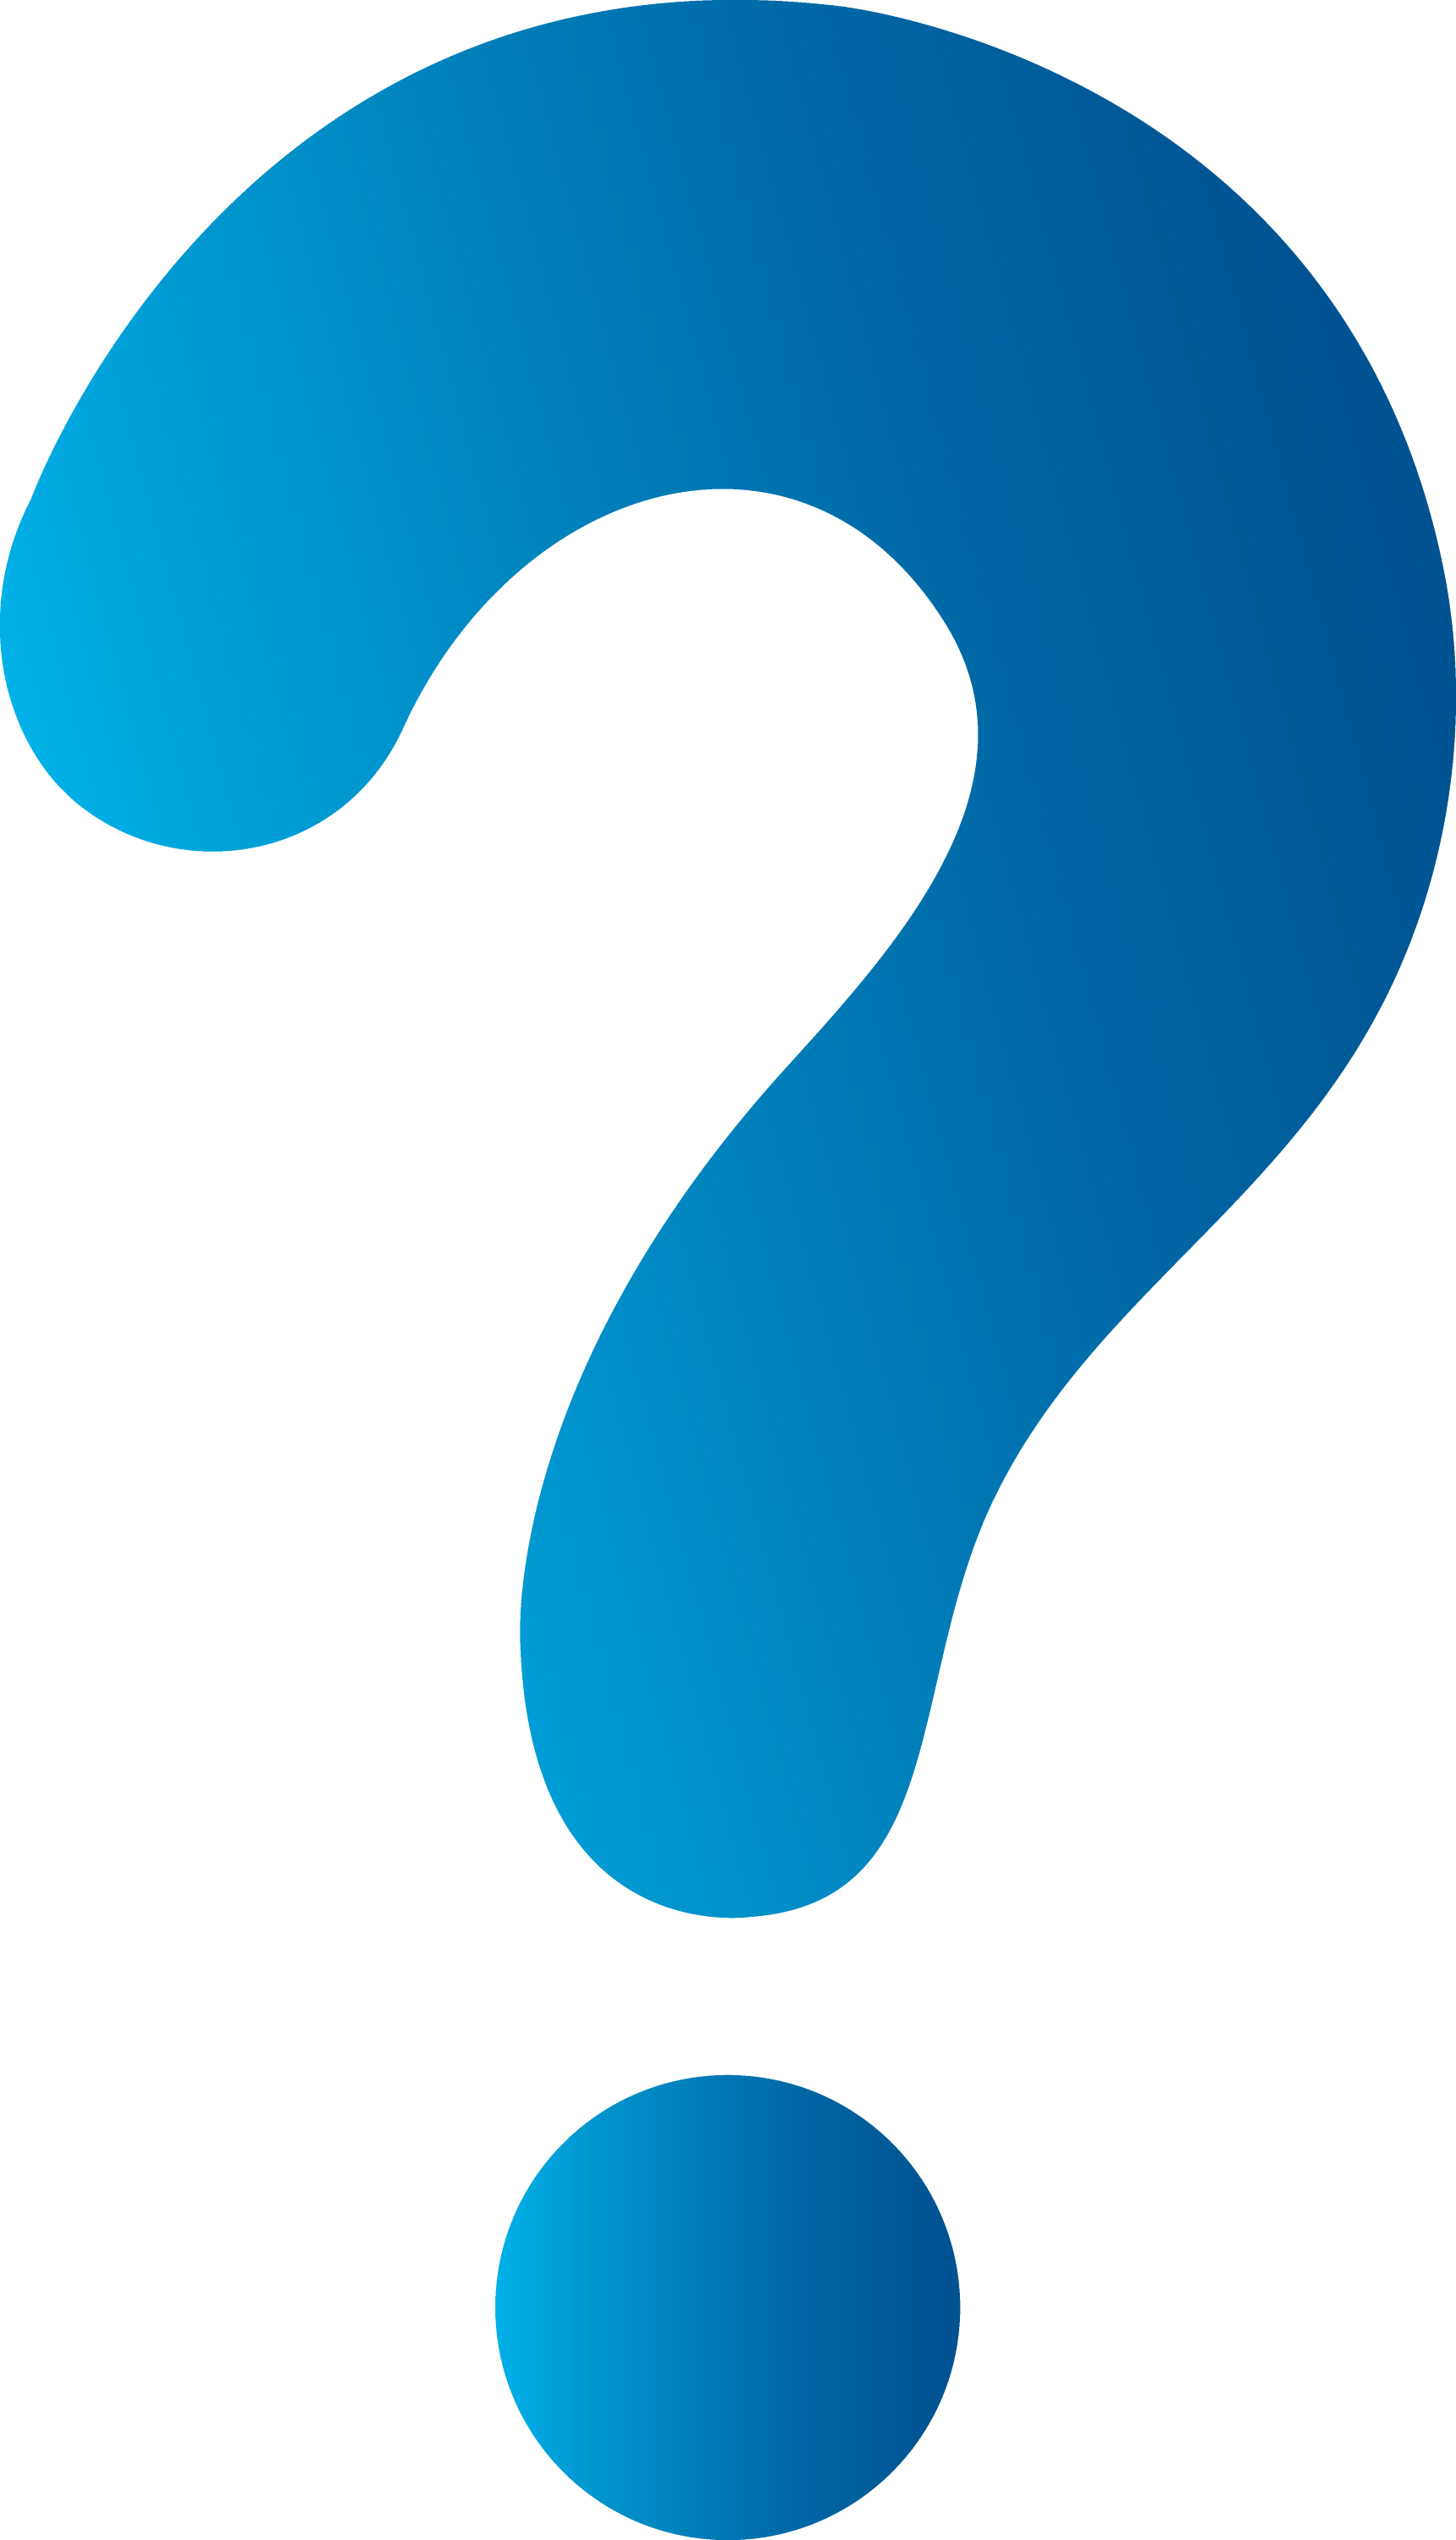 question mark clip art png - photo #25